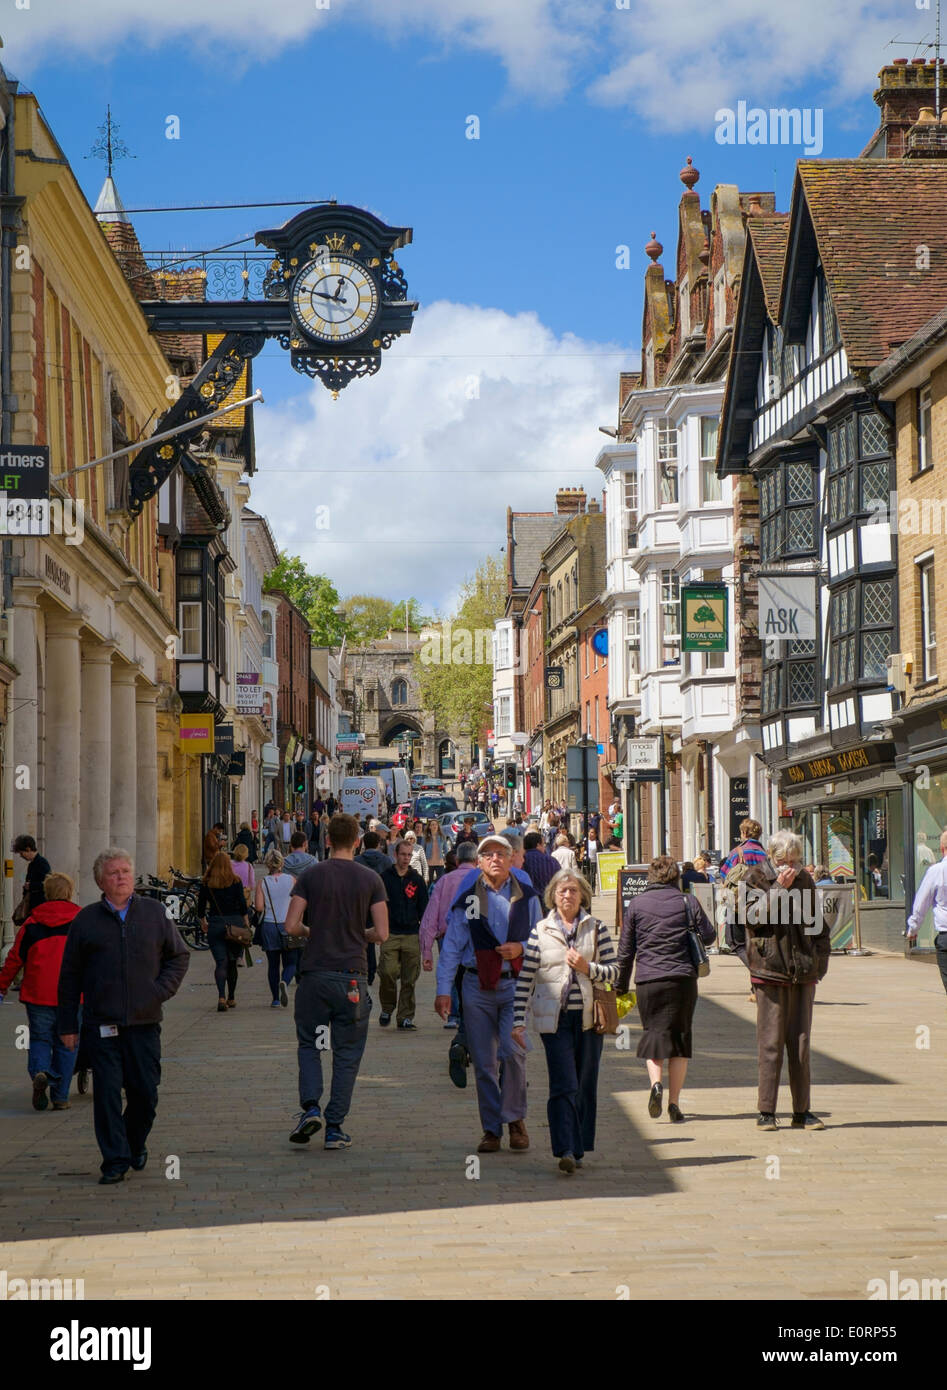 High Street in Winchester, Hampshire, England, UK - with town clock - Stock Image